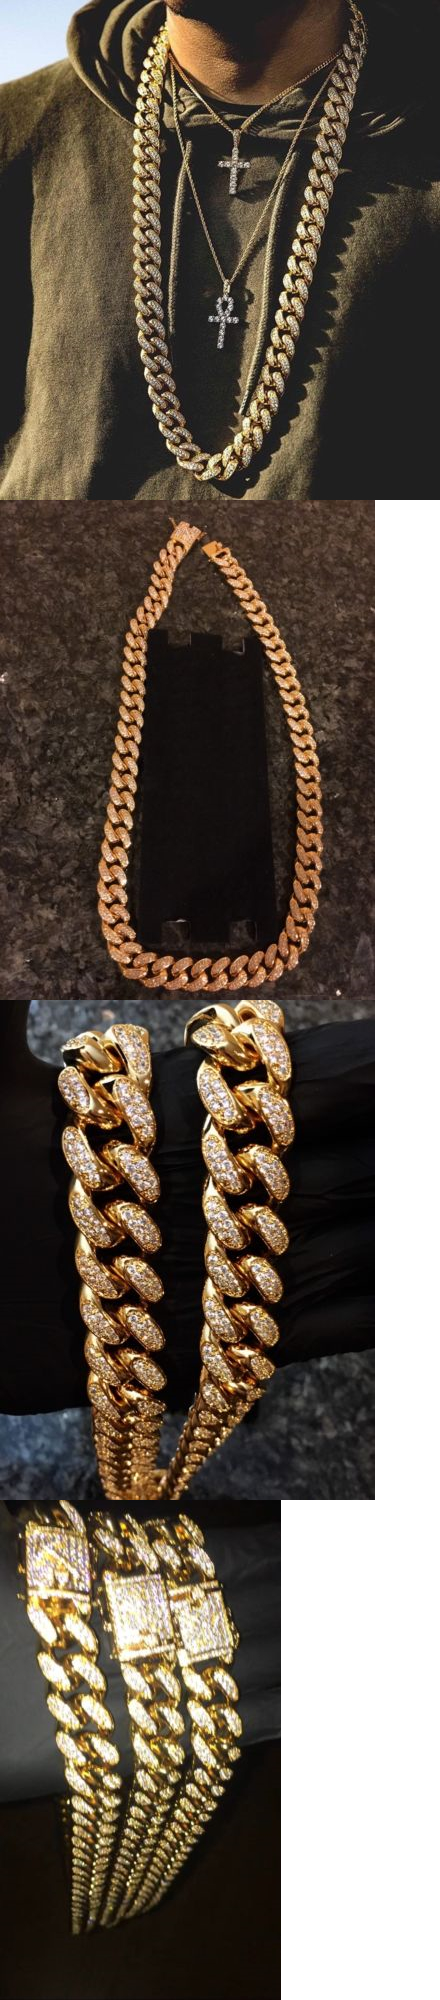 Bracelets mens iced out mm heavy thick gold and diamond